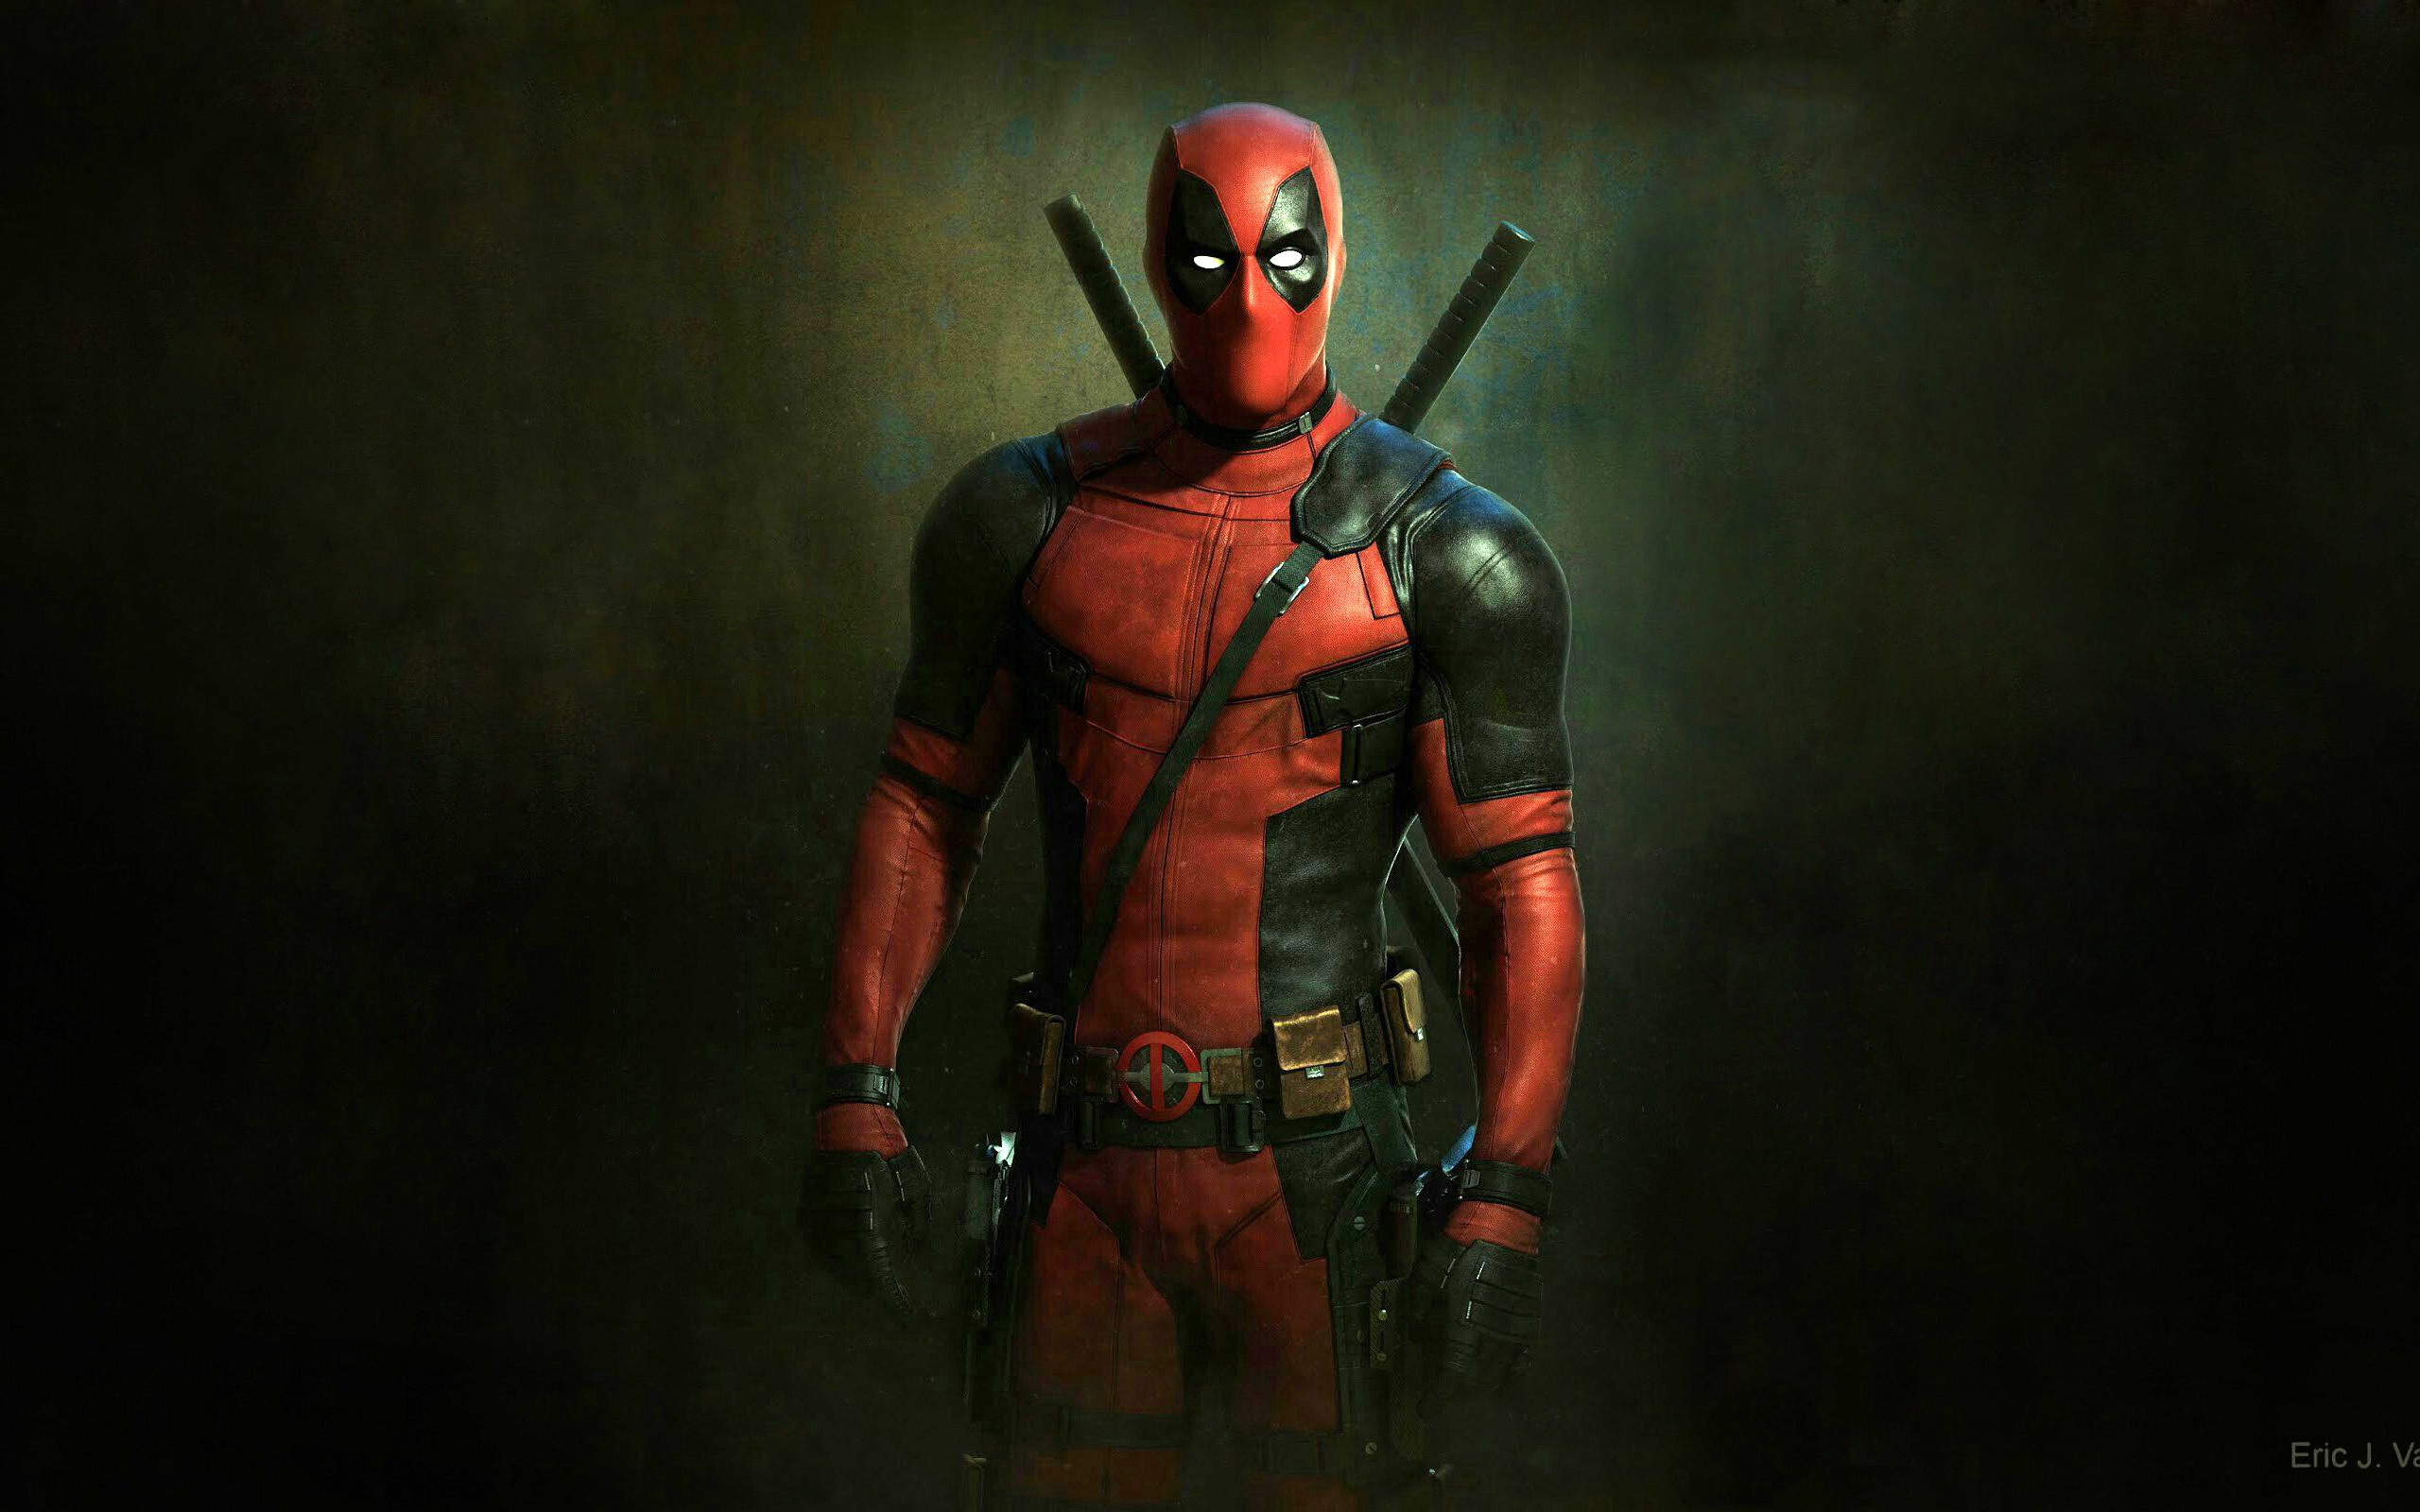 Deadpool Movie wallpaper Download free beautiful High